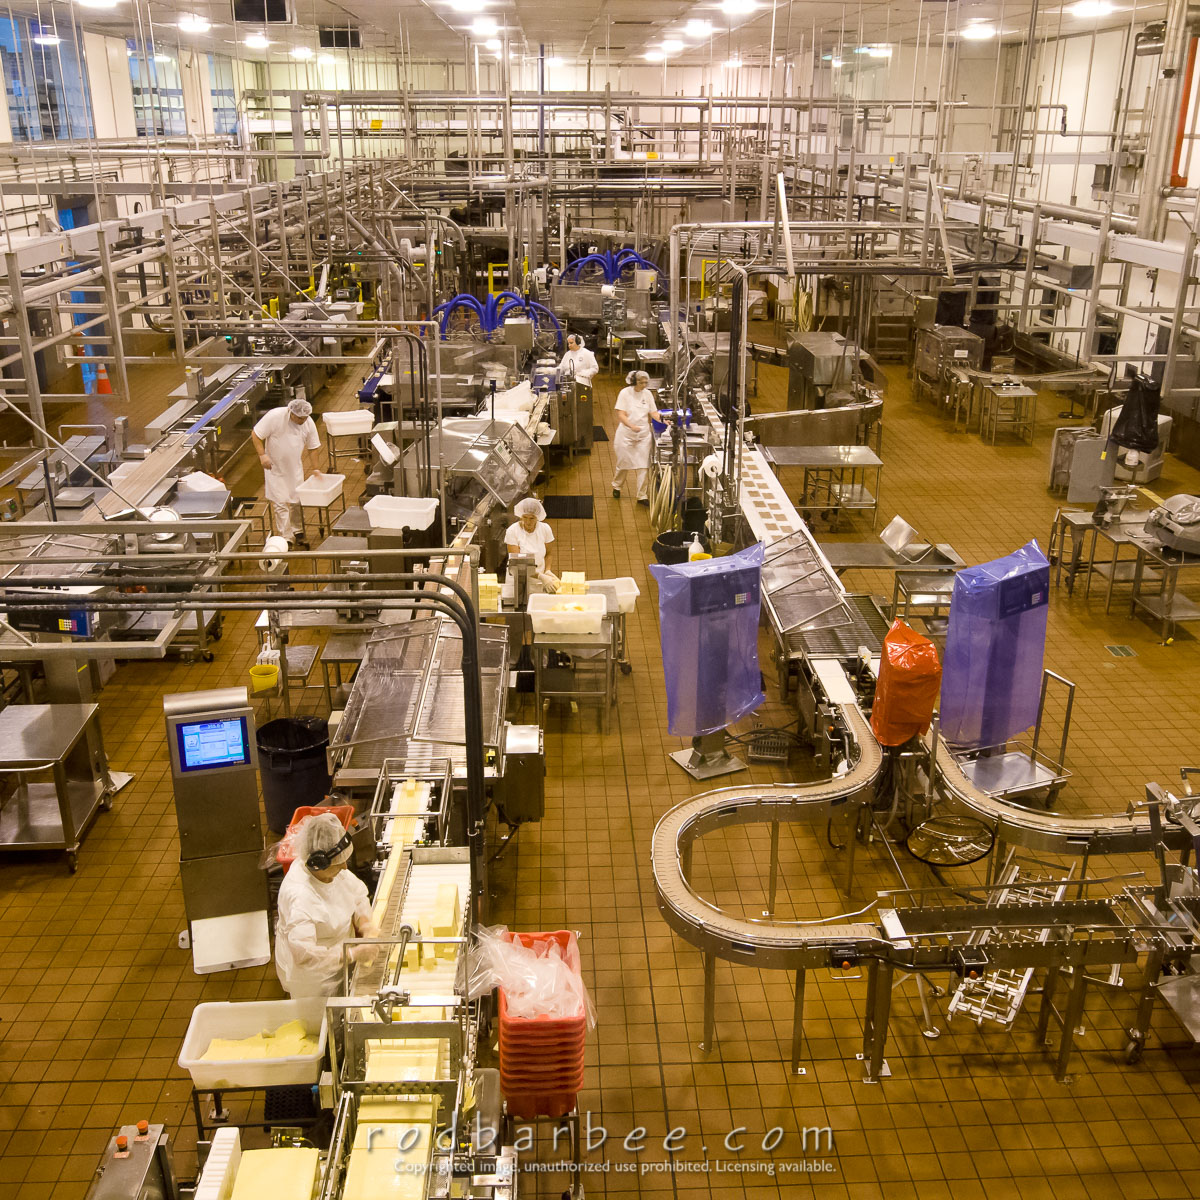 Barbee_110811_3_0203 |  Production line at the Tillamook Cheese Factory